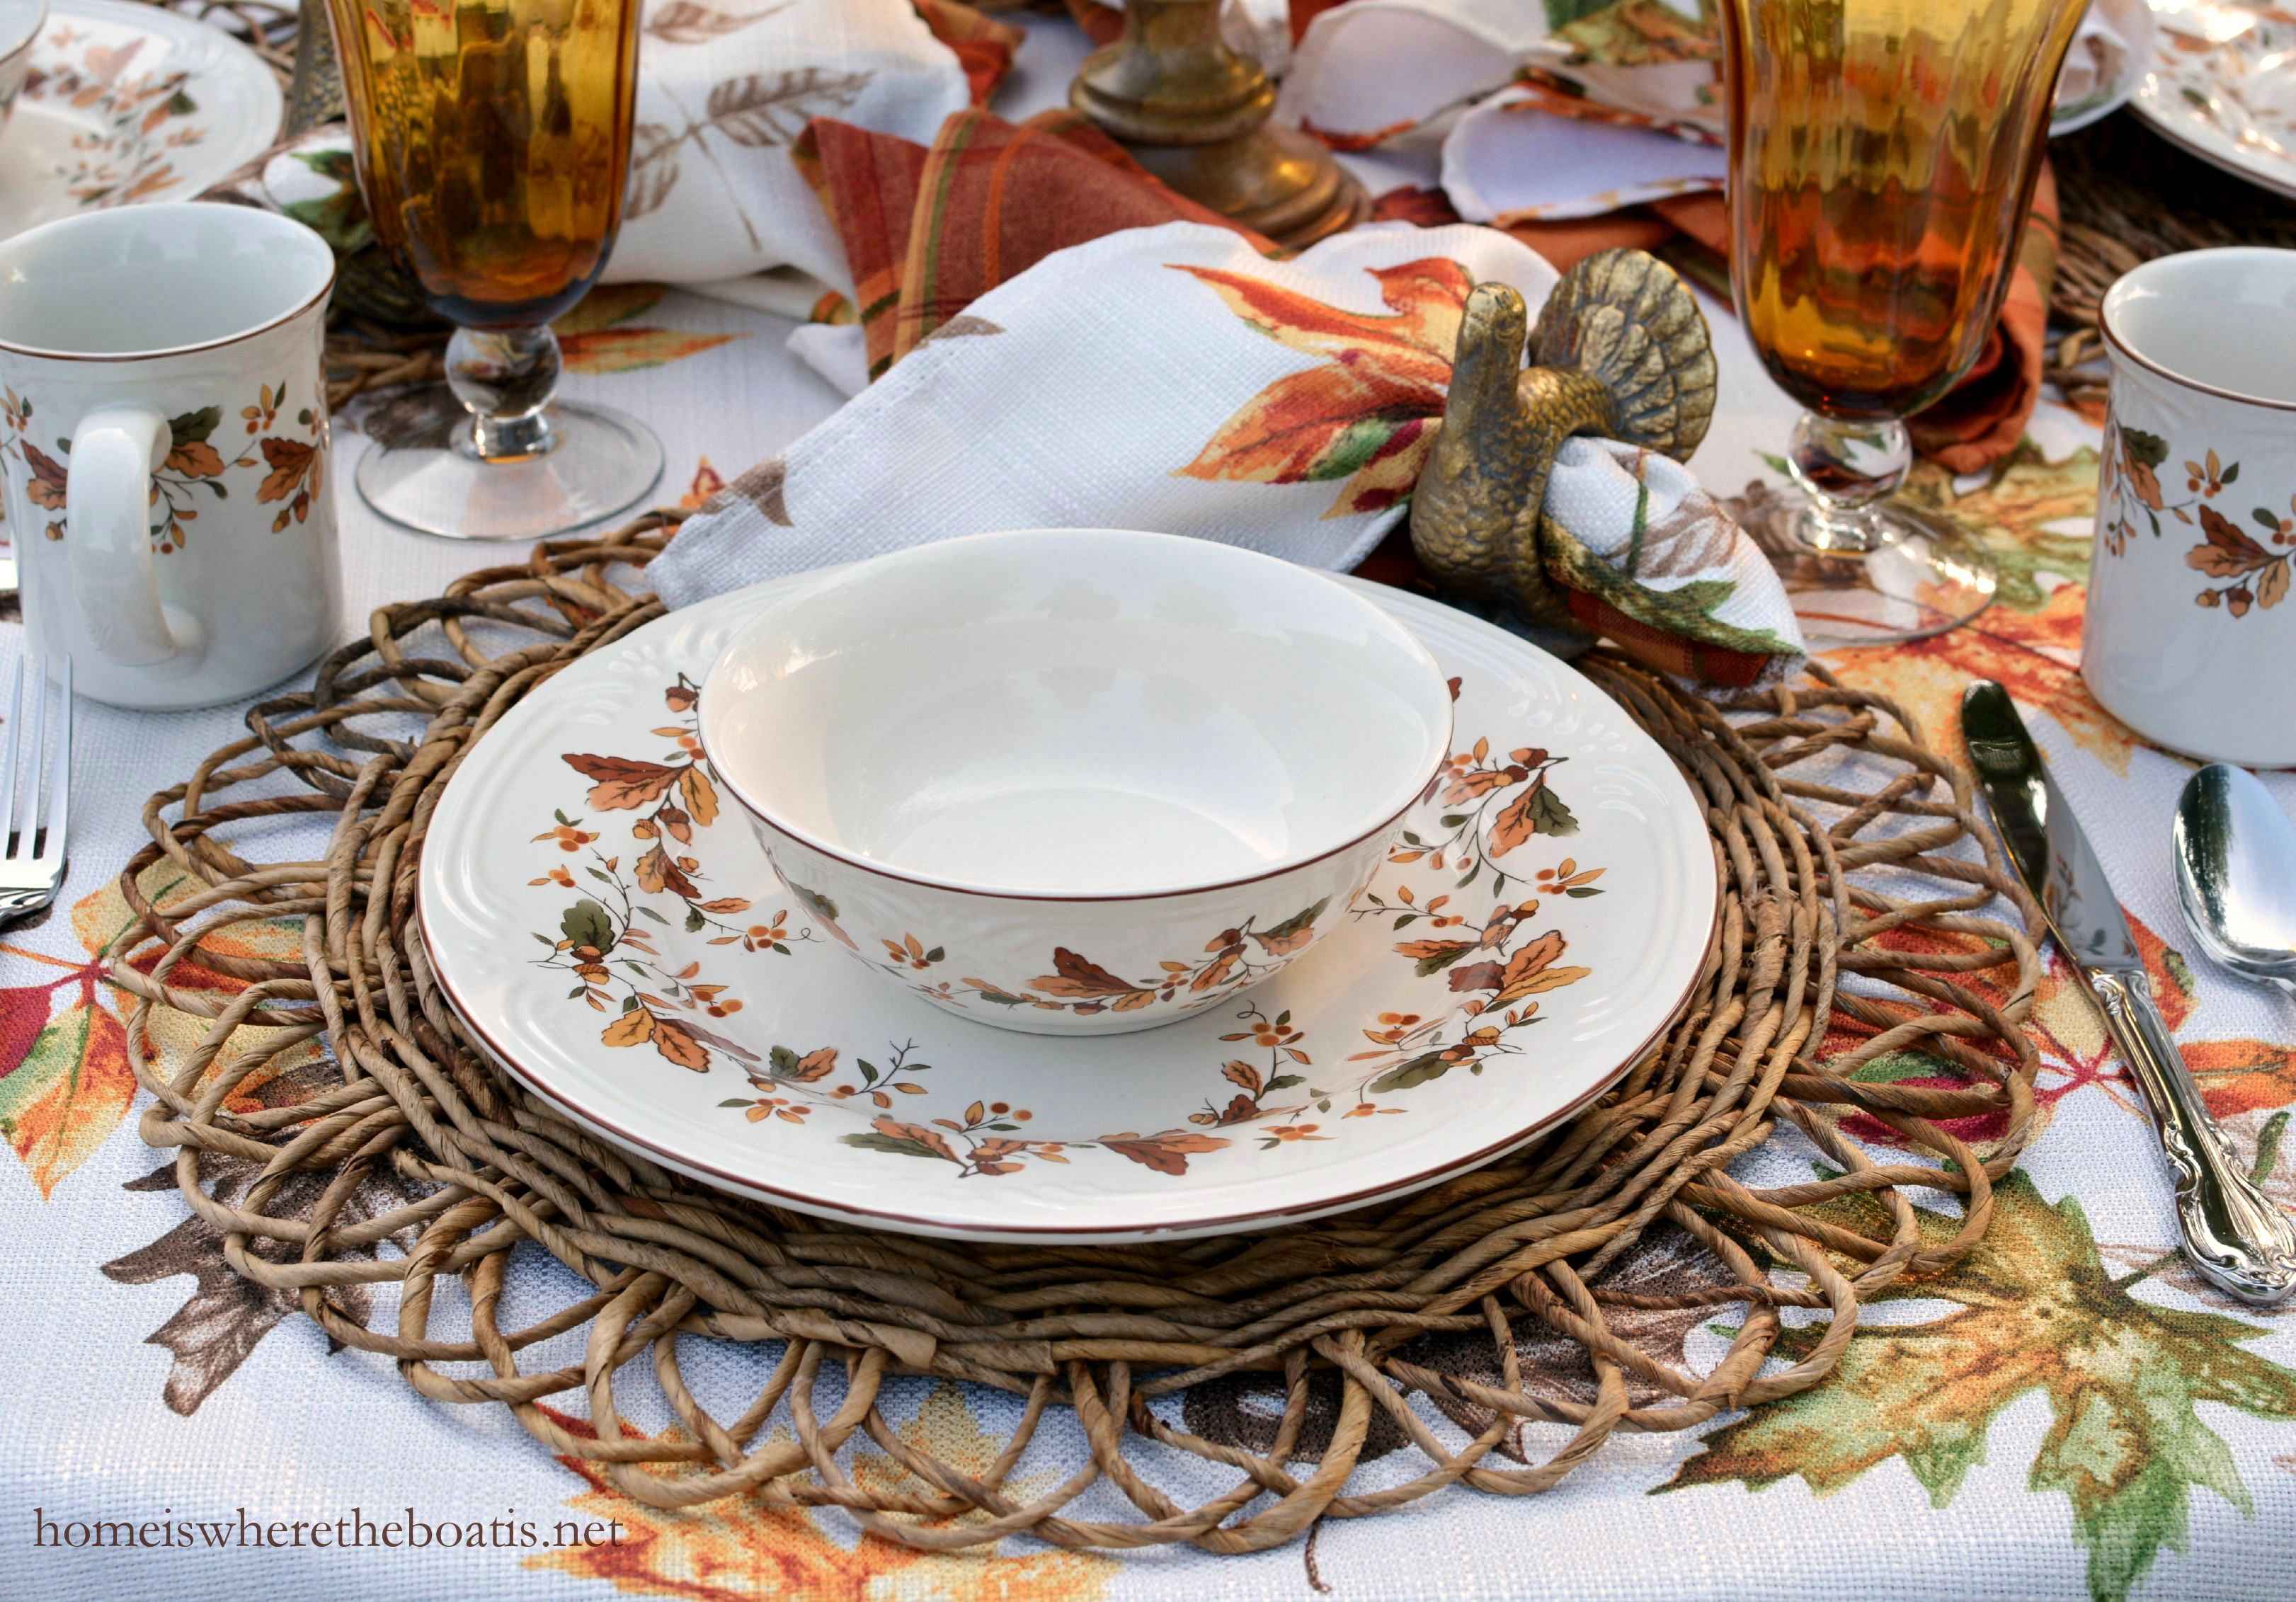 Woven chargers provide some texture and contrast to the dinnerware with a scalloped edge and design providing a turkey fantail effect. & Scattered Leaves Turkeys and Pfaltzgraff Autumn Berry Dinnerware ...